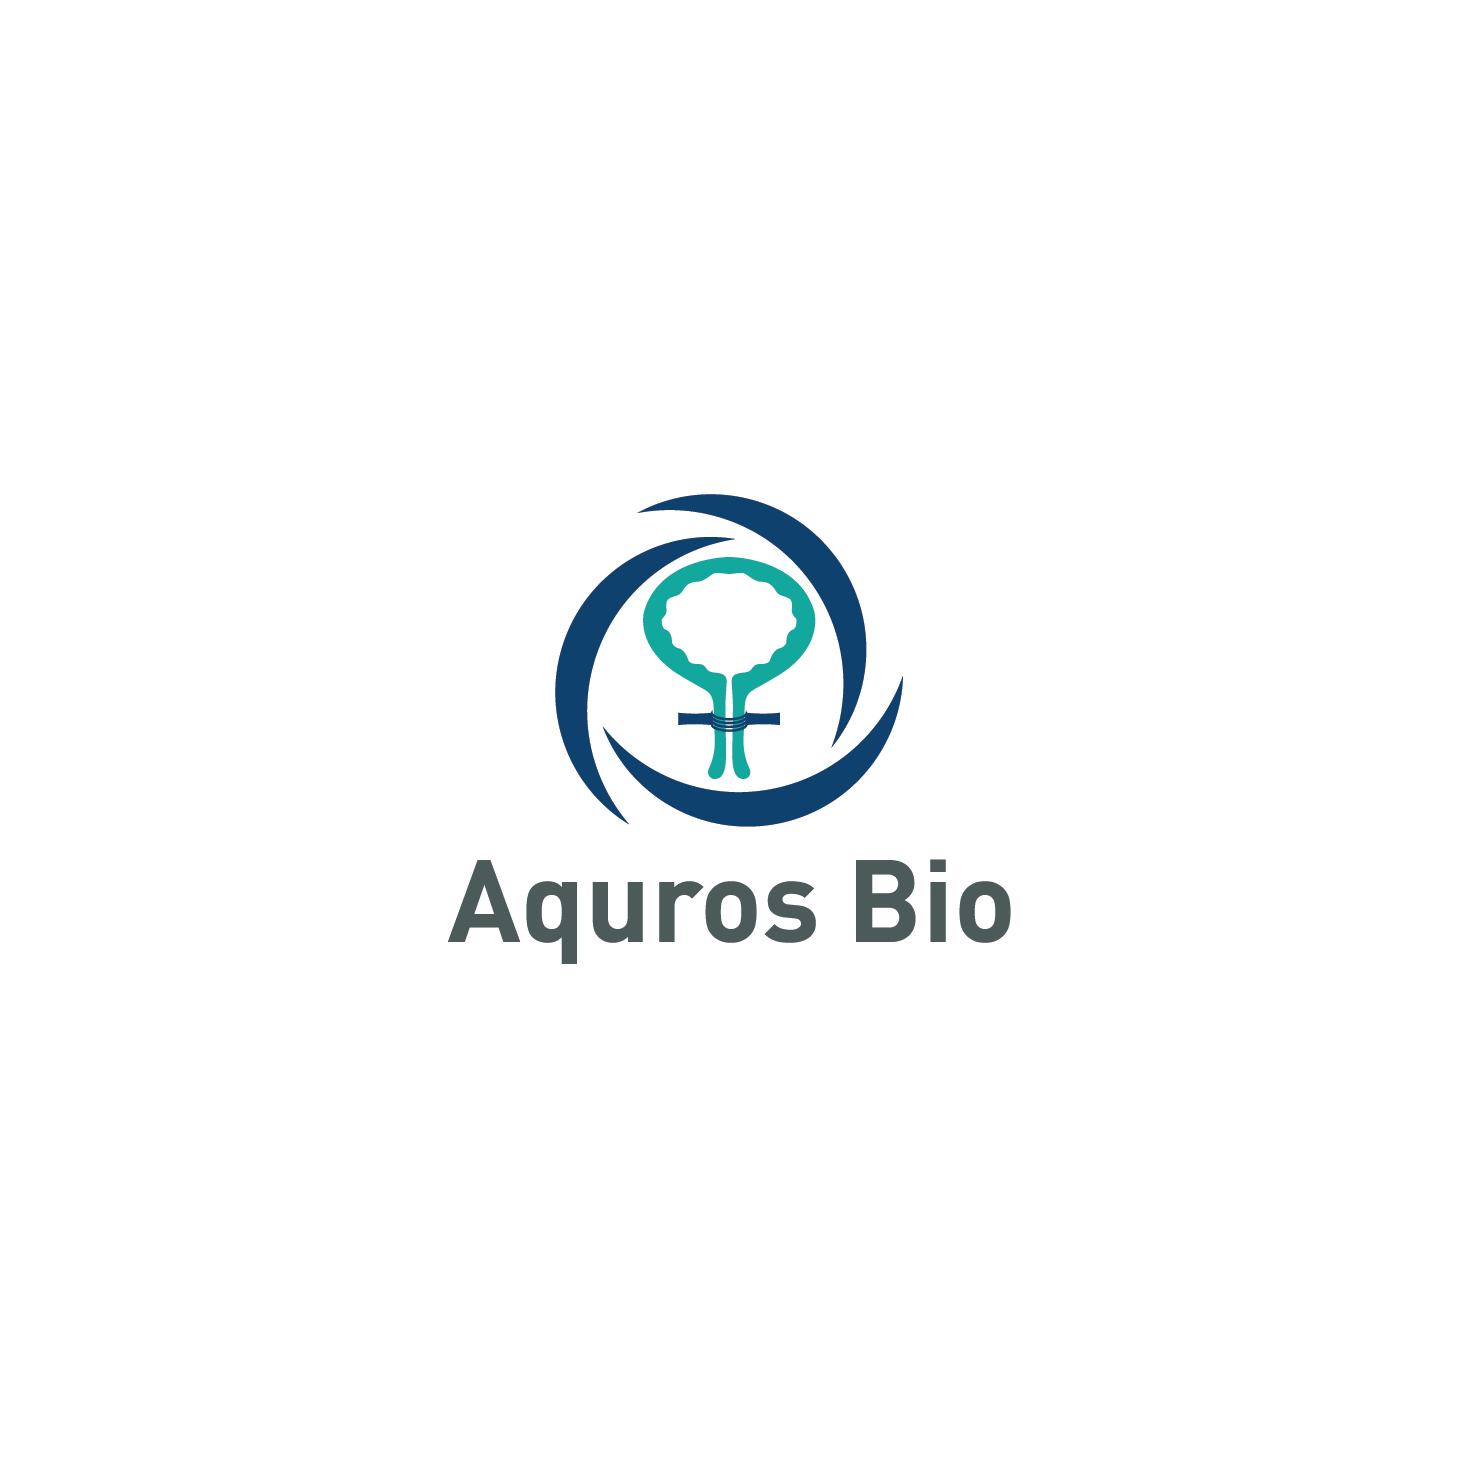 Start up biotech in urology needs logo and company colors